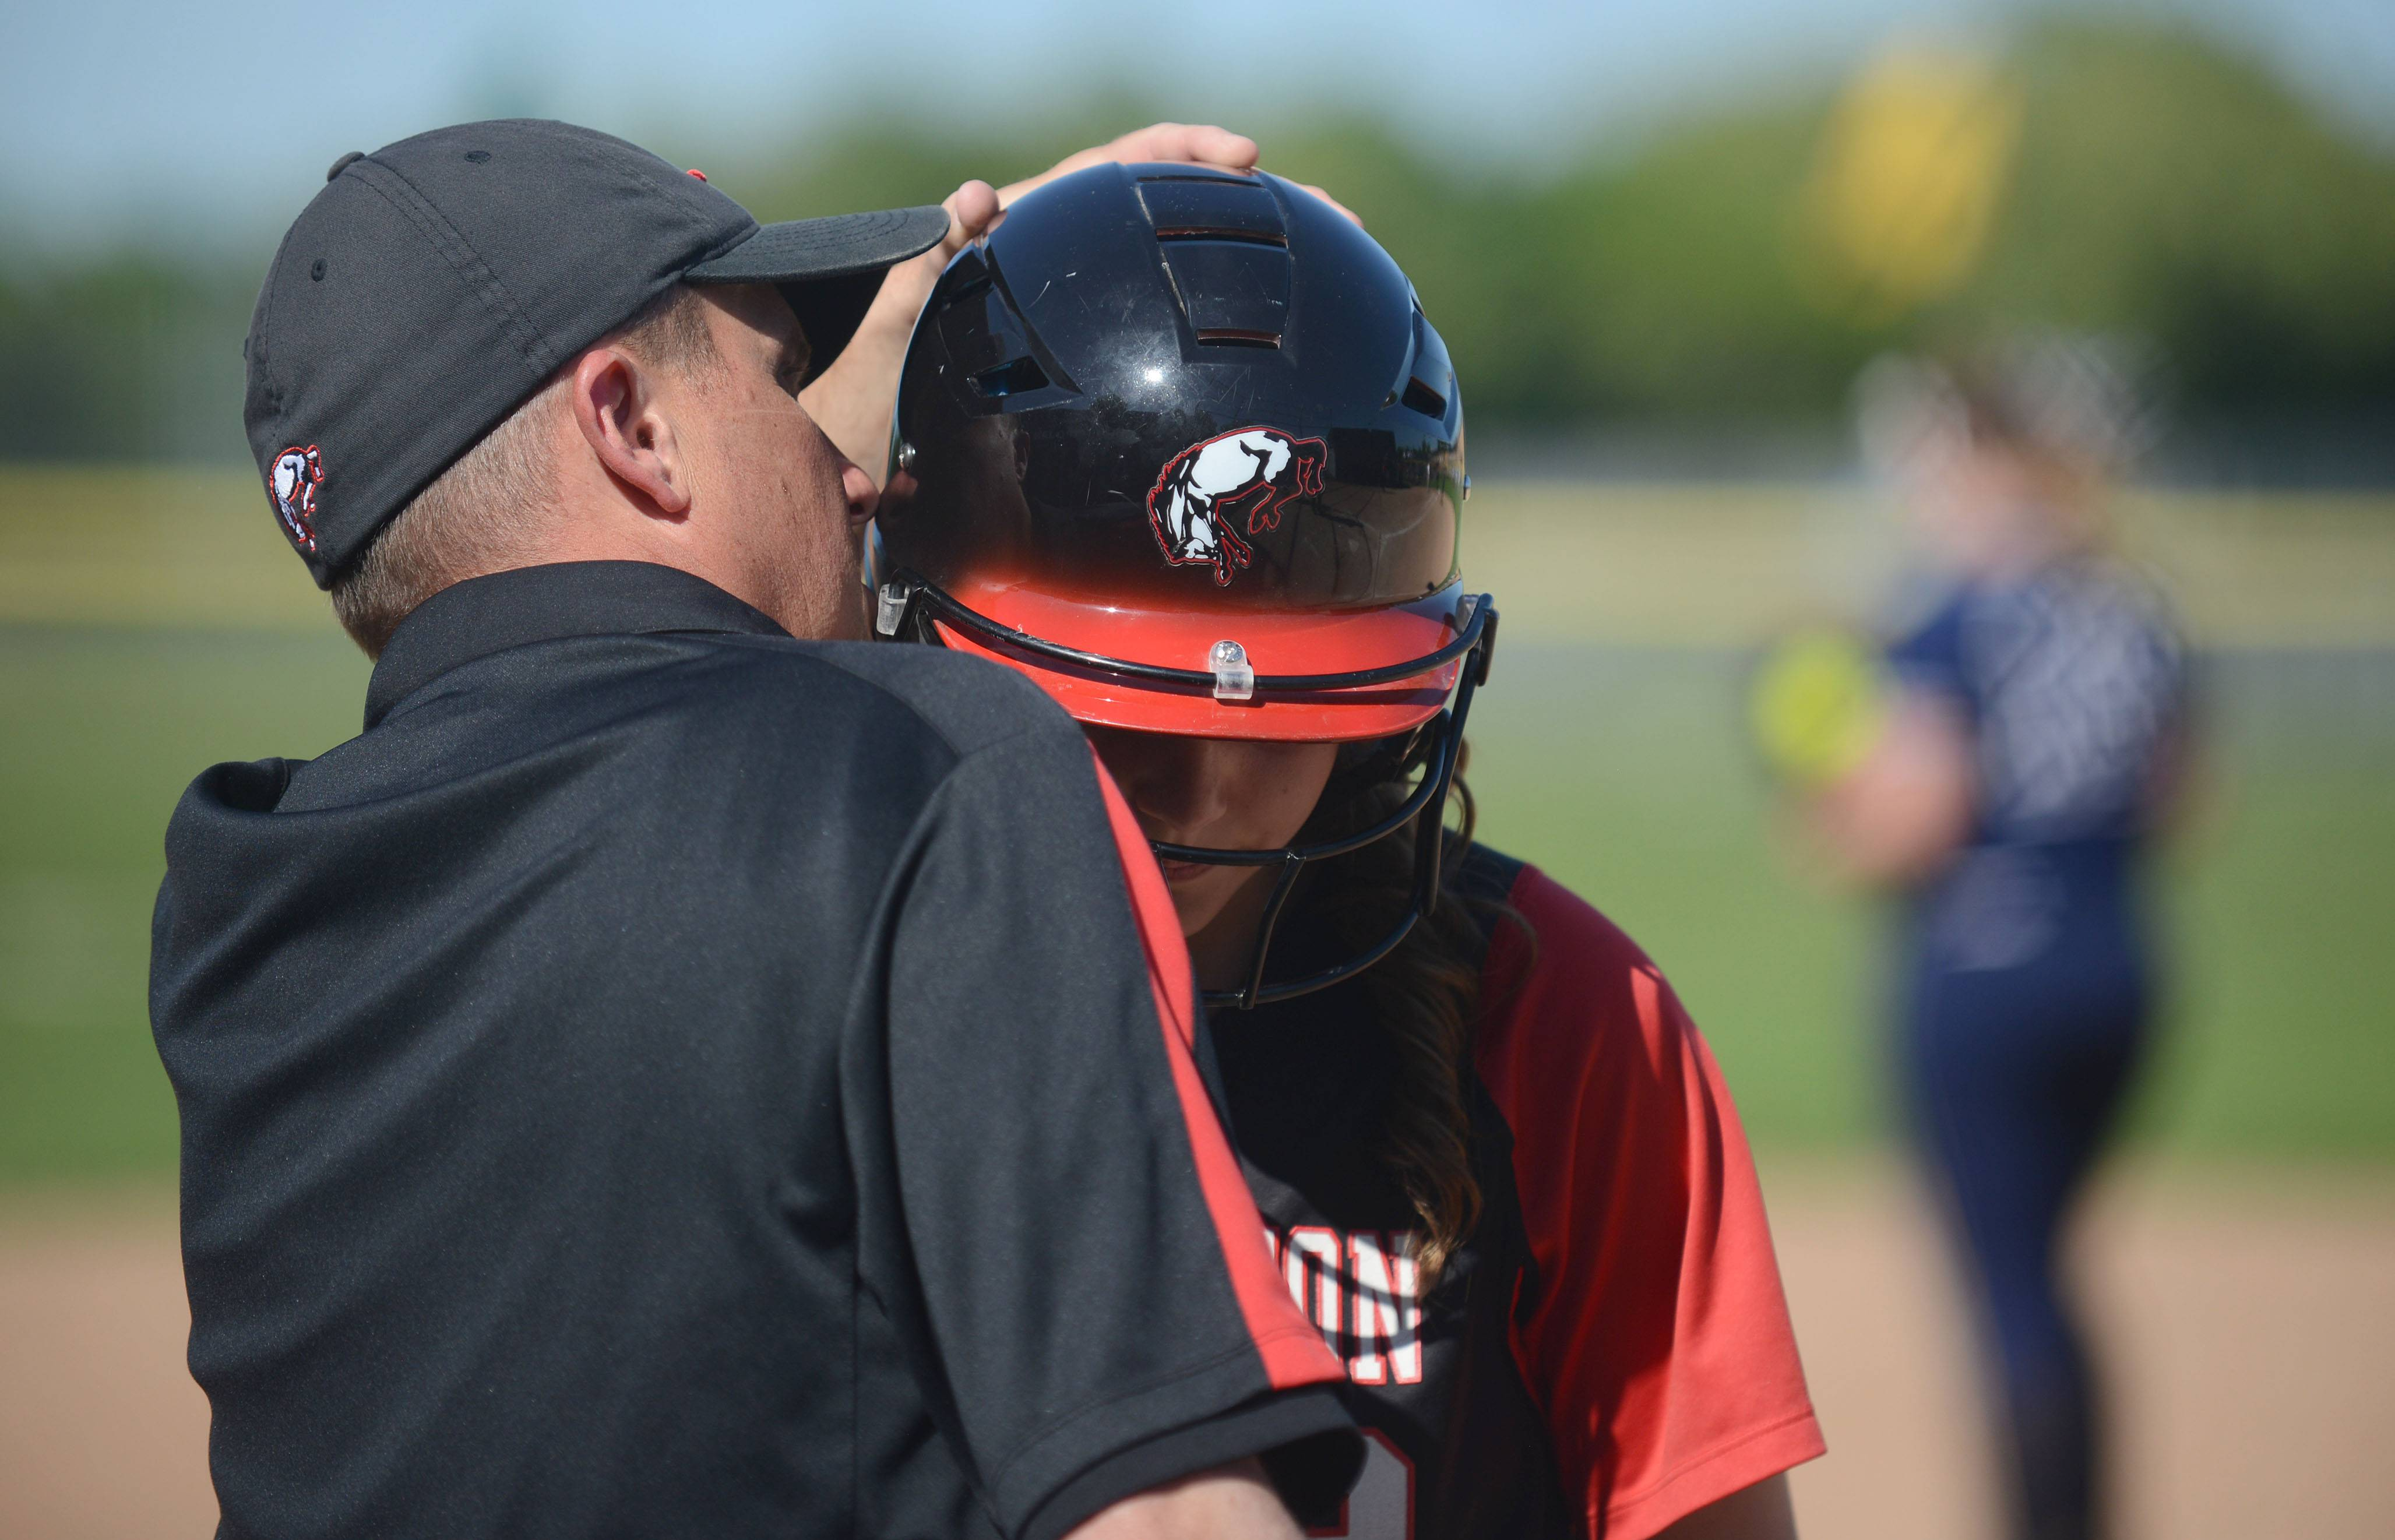 Barrington head coach Perry Peterson takes Katie Dehnert aside before she goes up to bat in the third inning vs. Cary-Grove in the Class 4A girls softball regional championship in Cary on Friday, May 30.